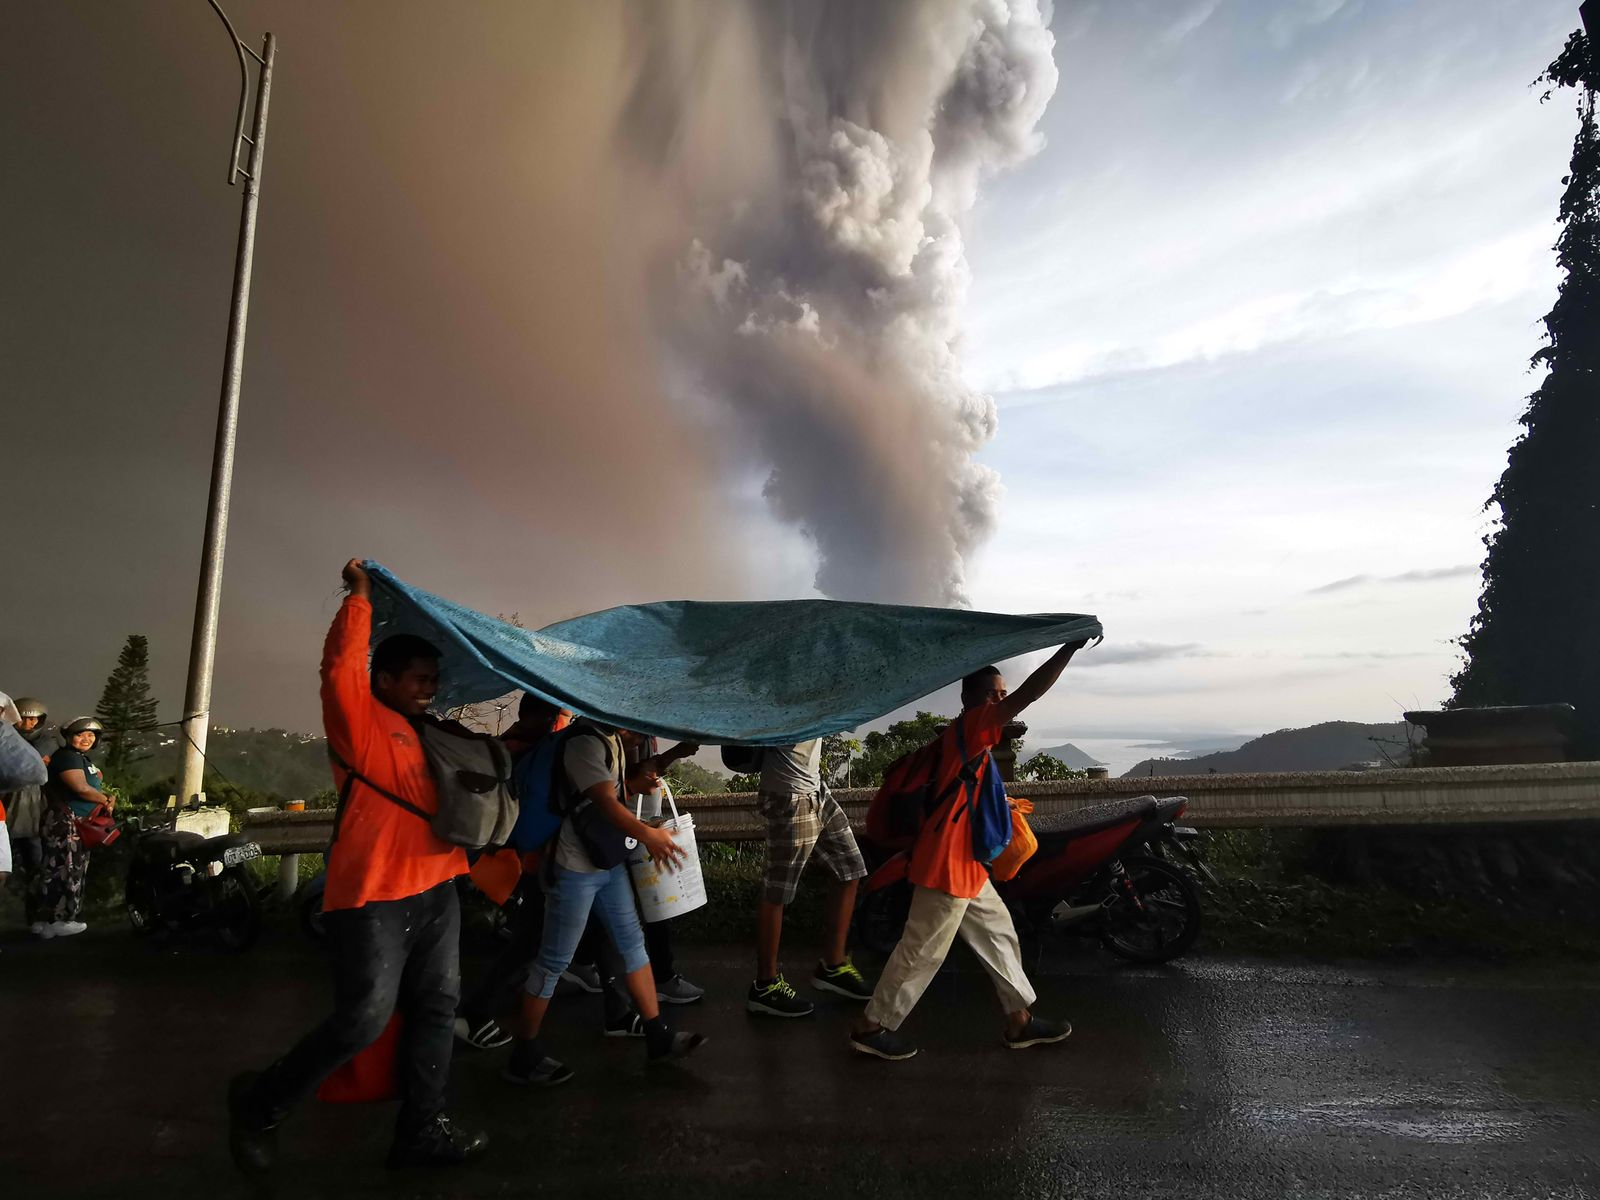 Evacuations underway as Taal Volcano spews giant ash column in the Philippines, Tagaytay City - 12 Jan 2020